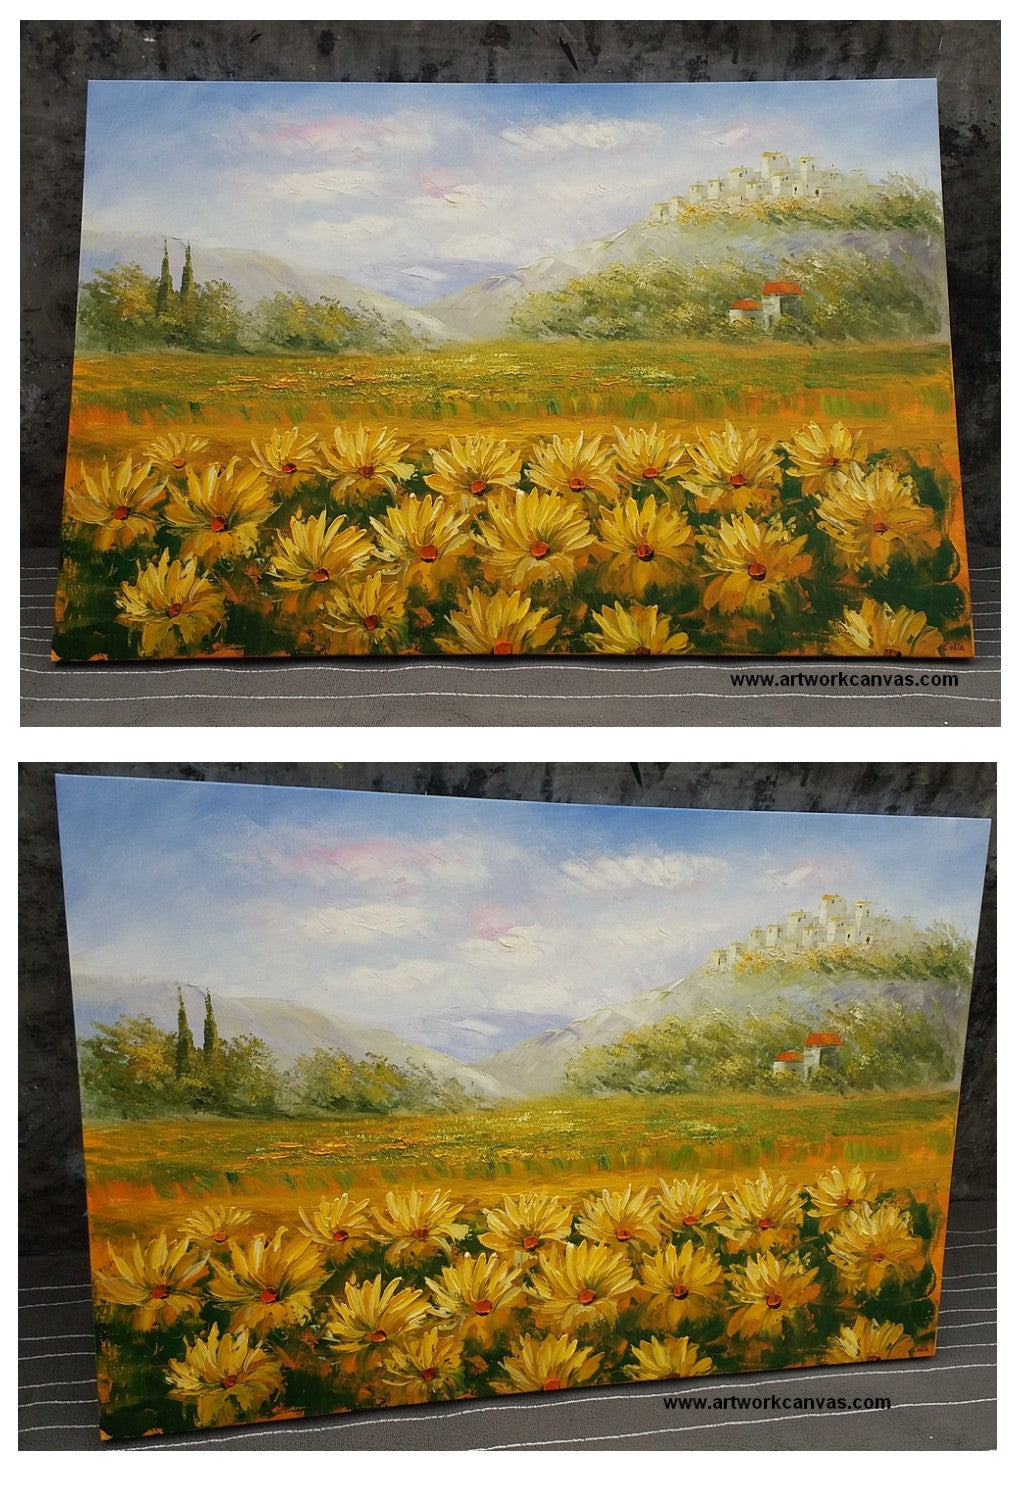 Landscape Art, Sunflower Artwork, Large Canvas Painting